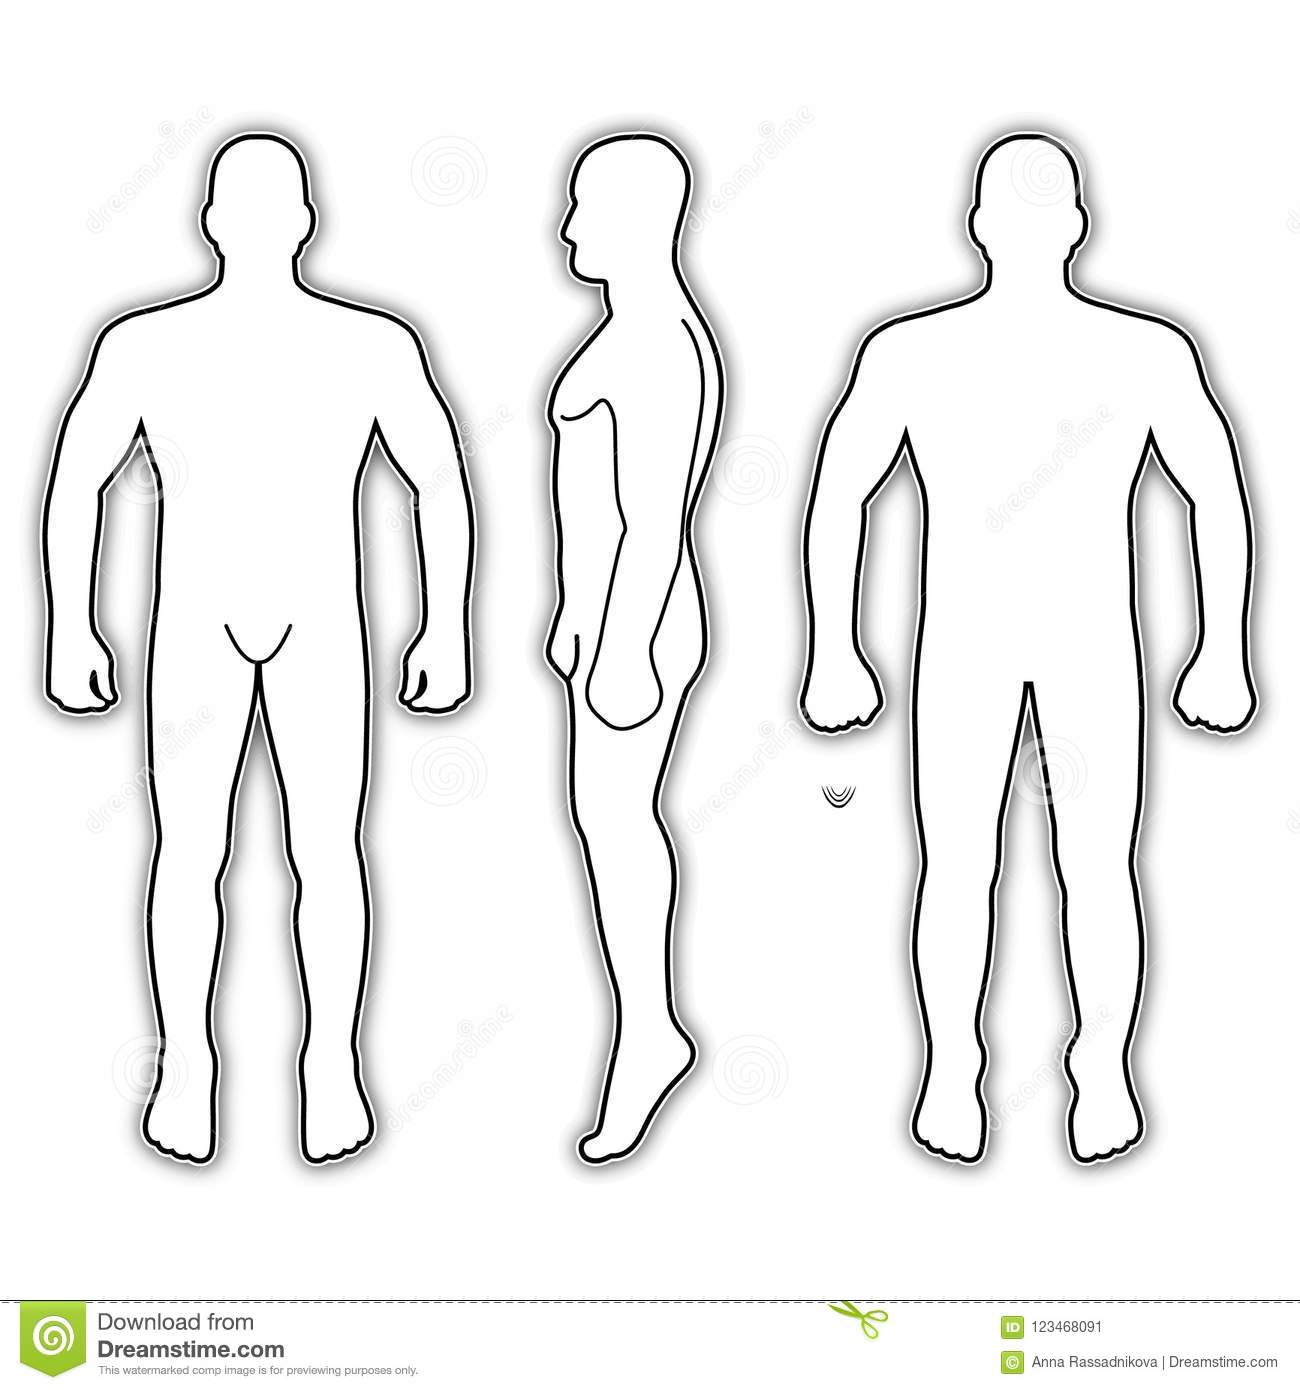 Fashion Man Body Full Length Bald Template Figure Silhouette Front Back And Side Views Vector Illustration Isolated On White Background